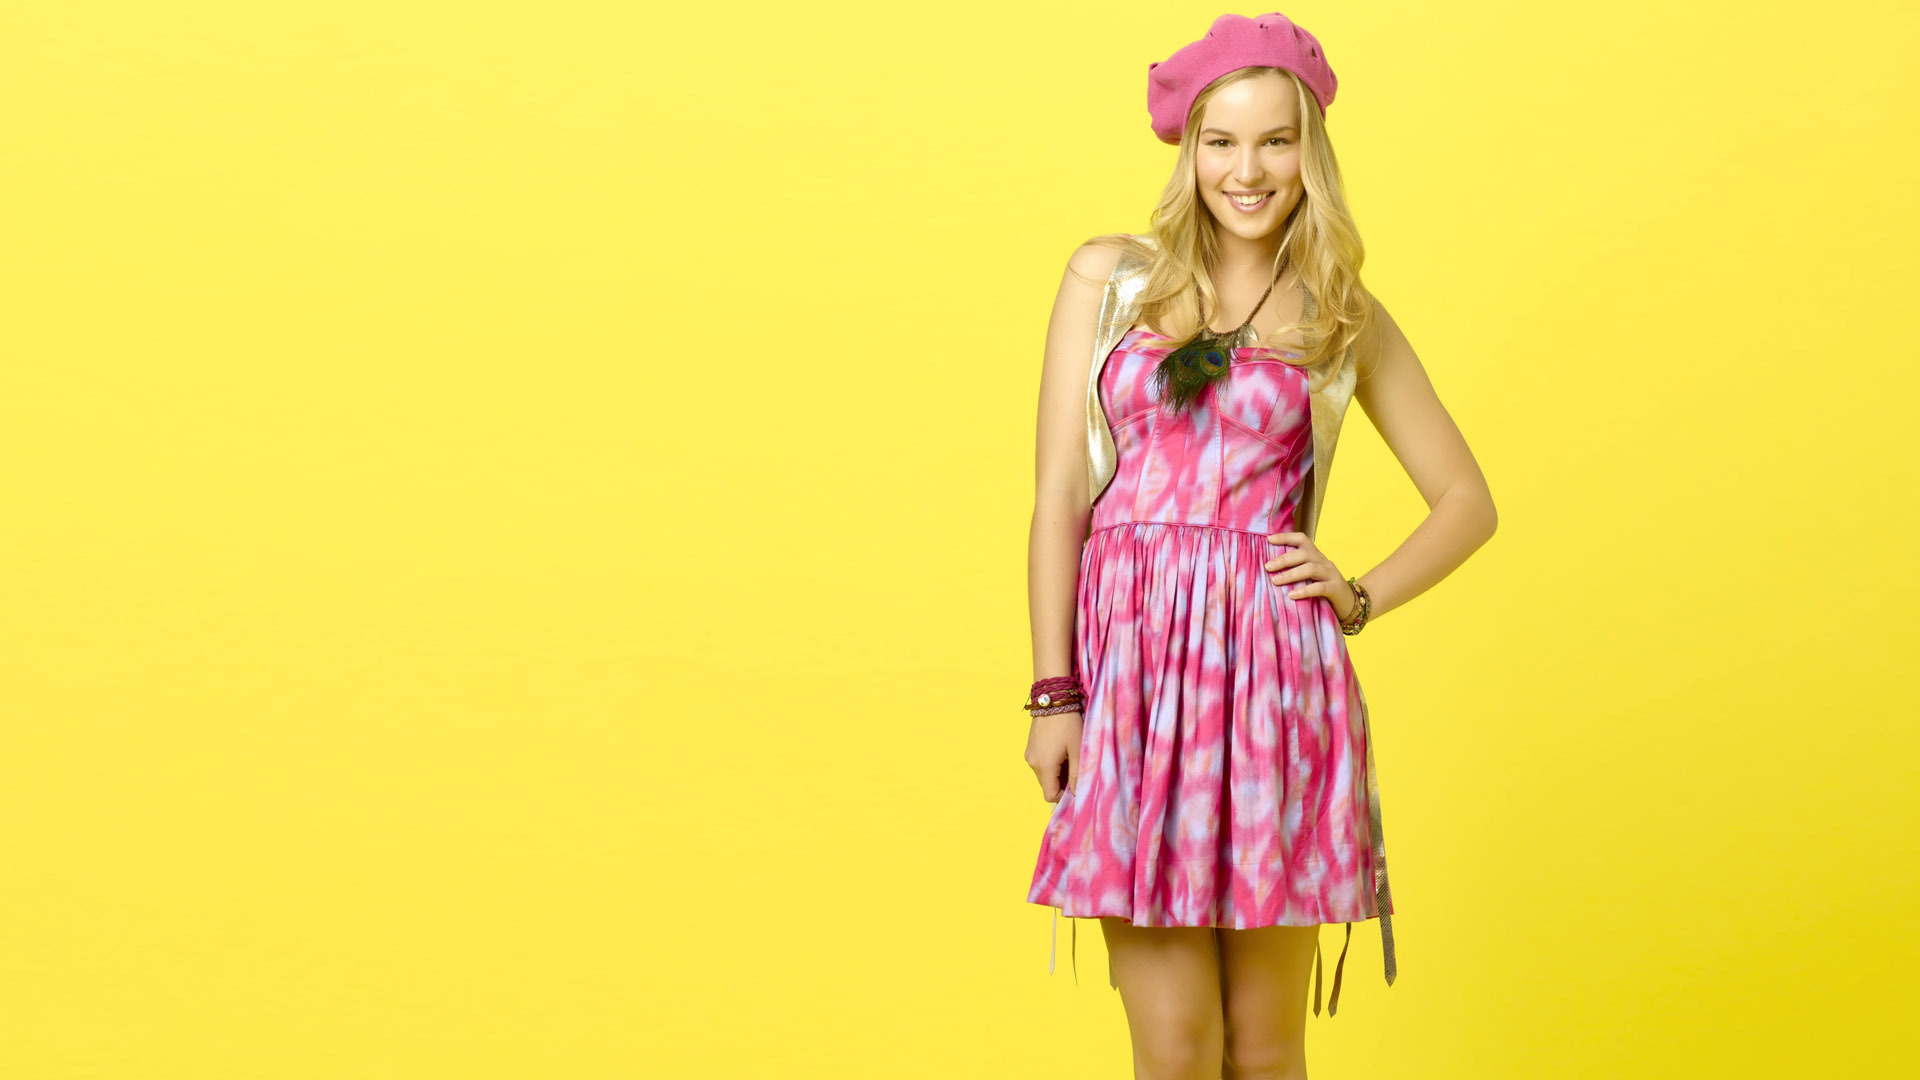 Bridgit Mendler For Desktop